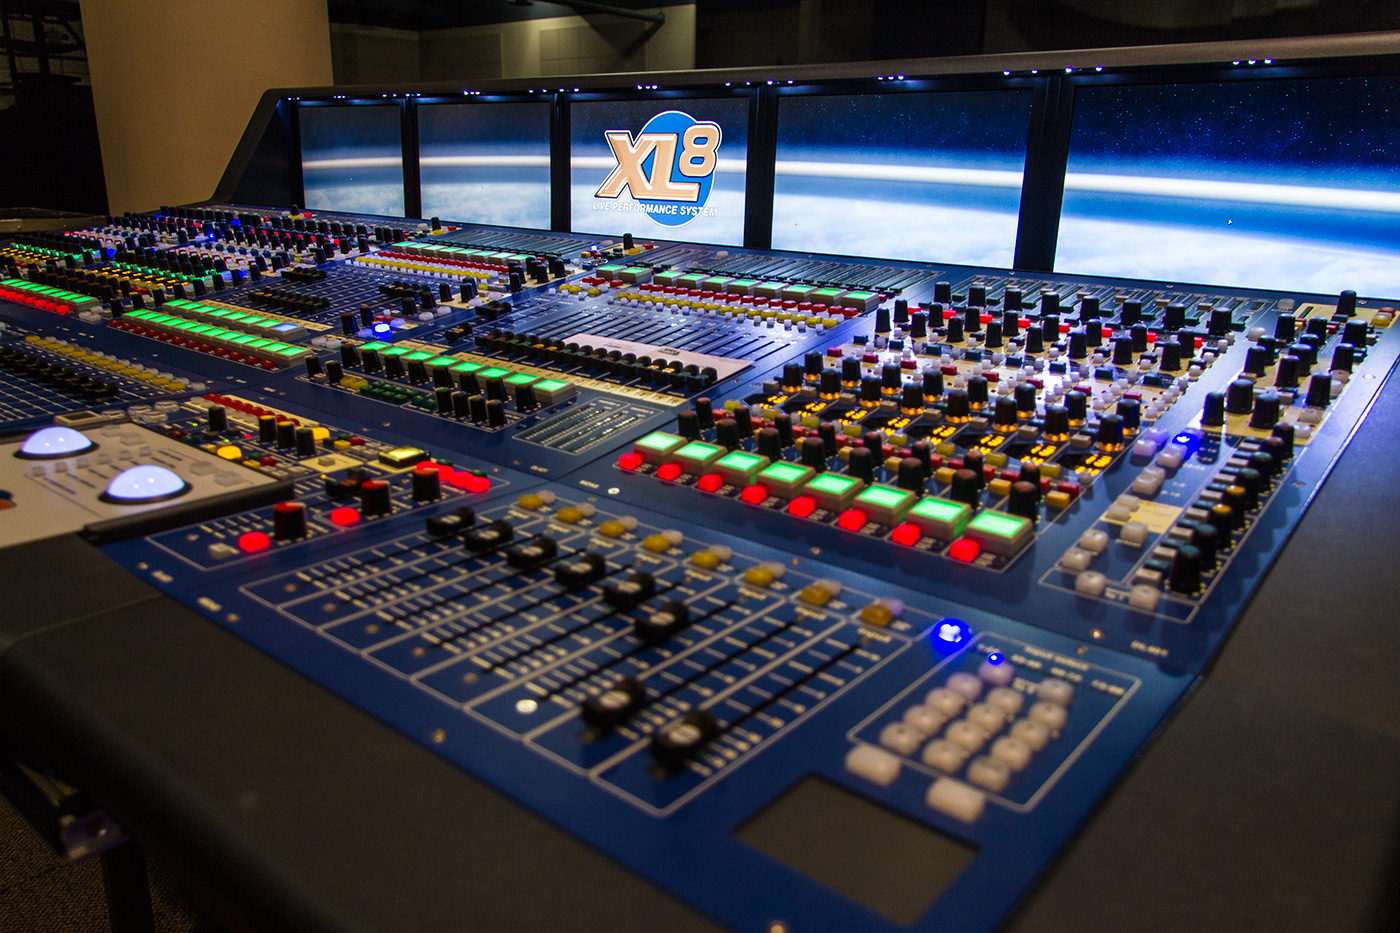 how to change audio channels from 8 to 6